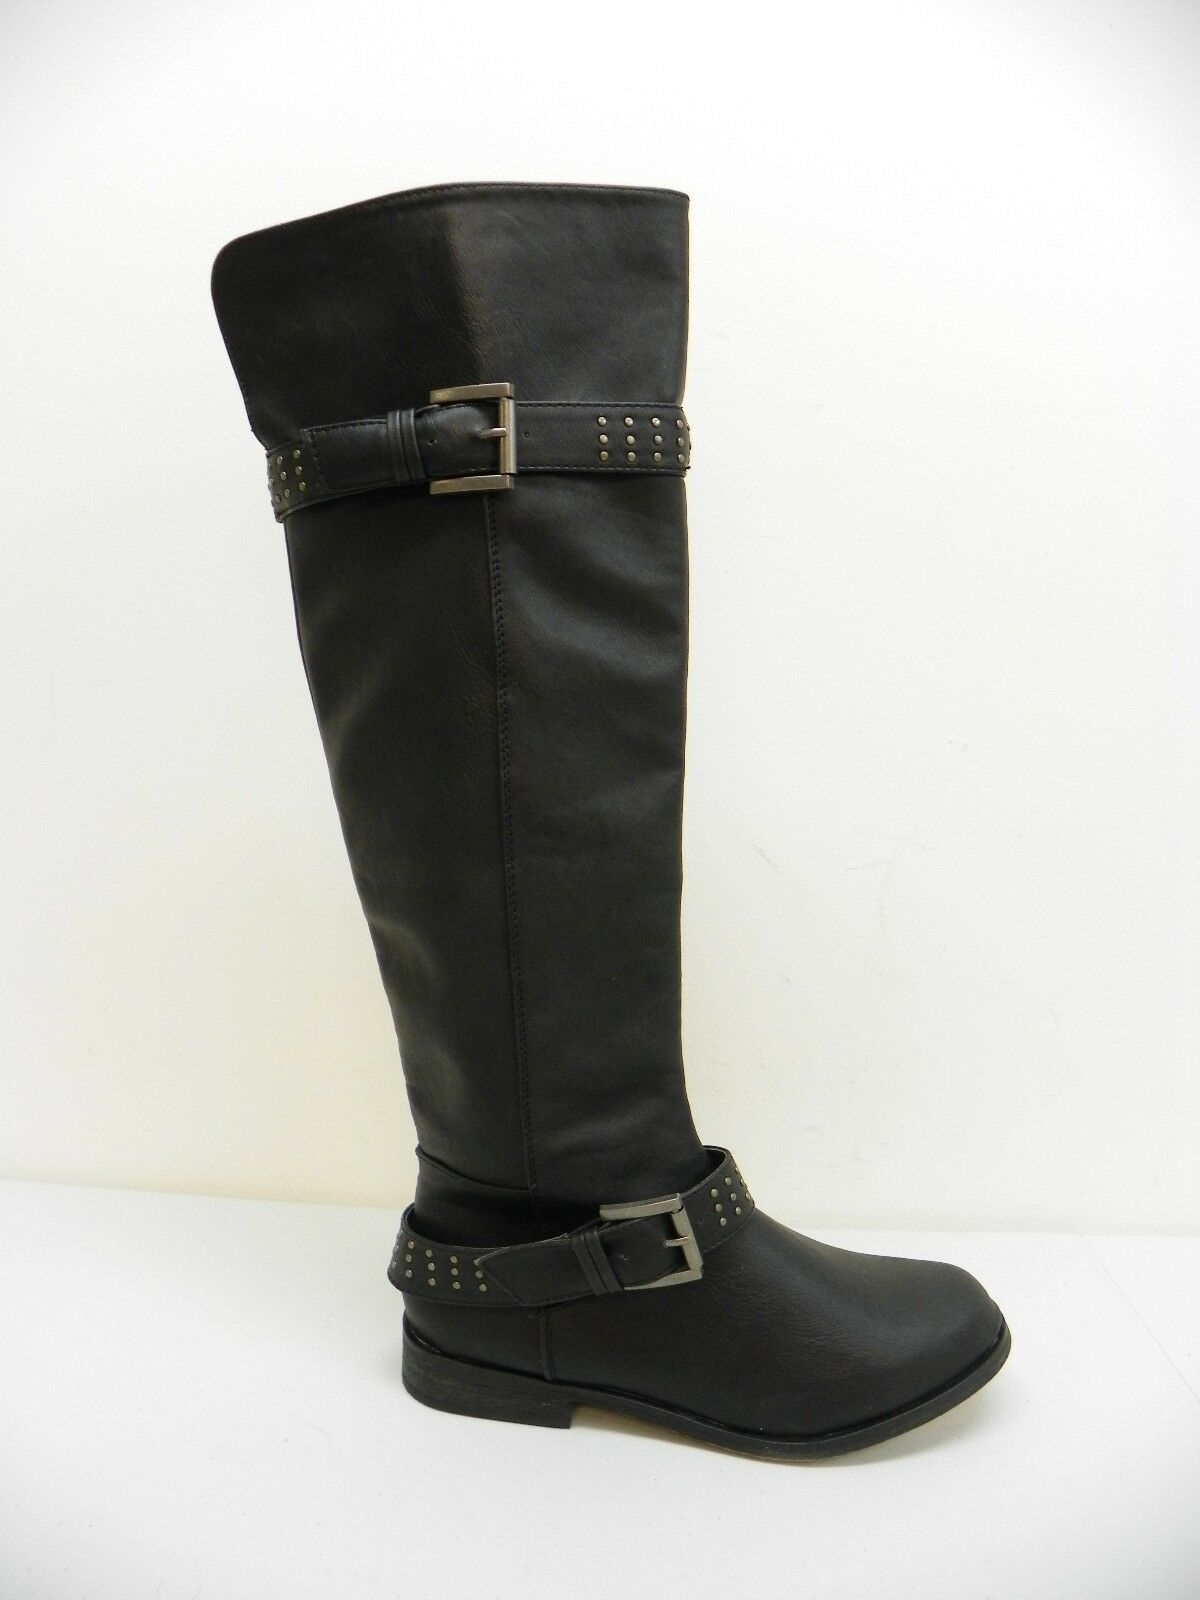 XOXO Womens Shoe Brianna Tall Shaft Flat Boots Black Faux Leather 5.5M